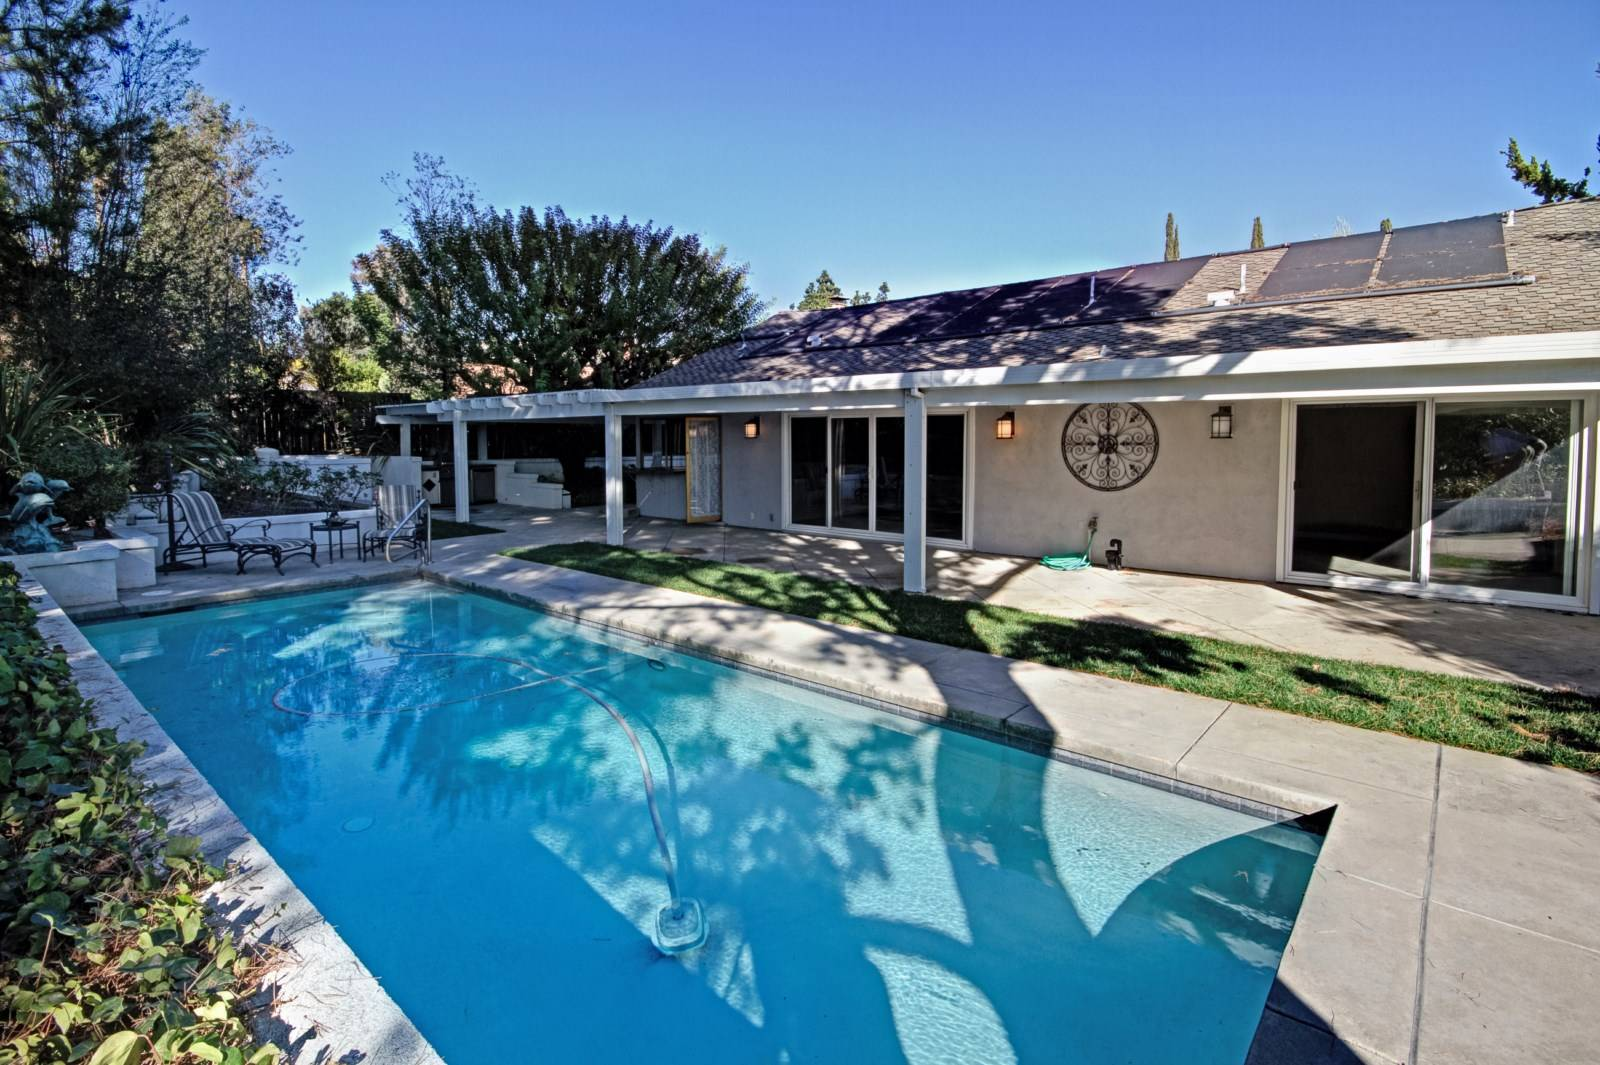 Mission viejo 3 bedroom pool home for sale for 3 bedroom house with pool